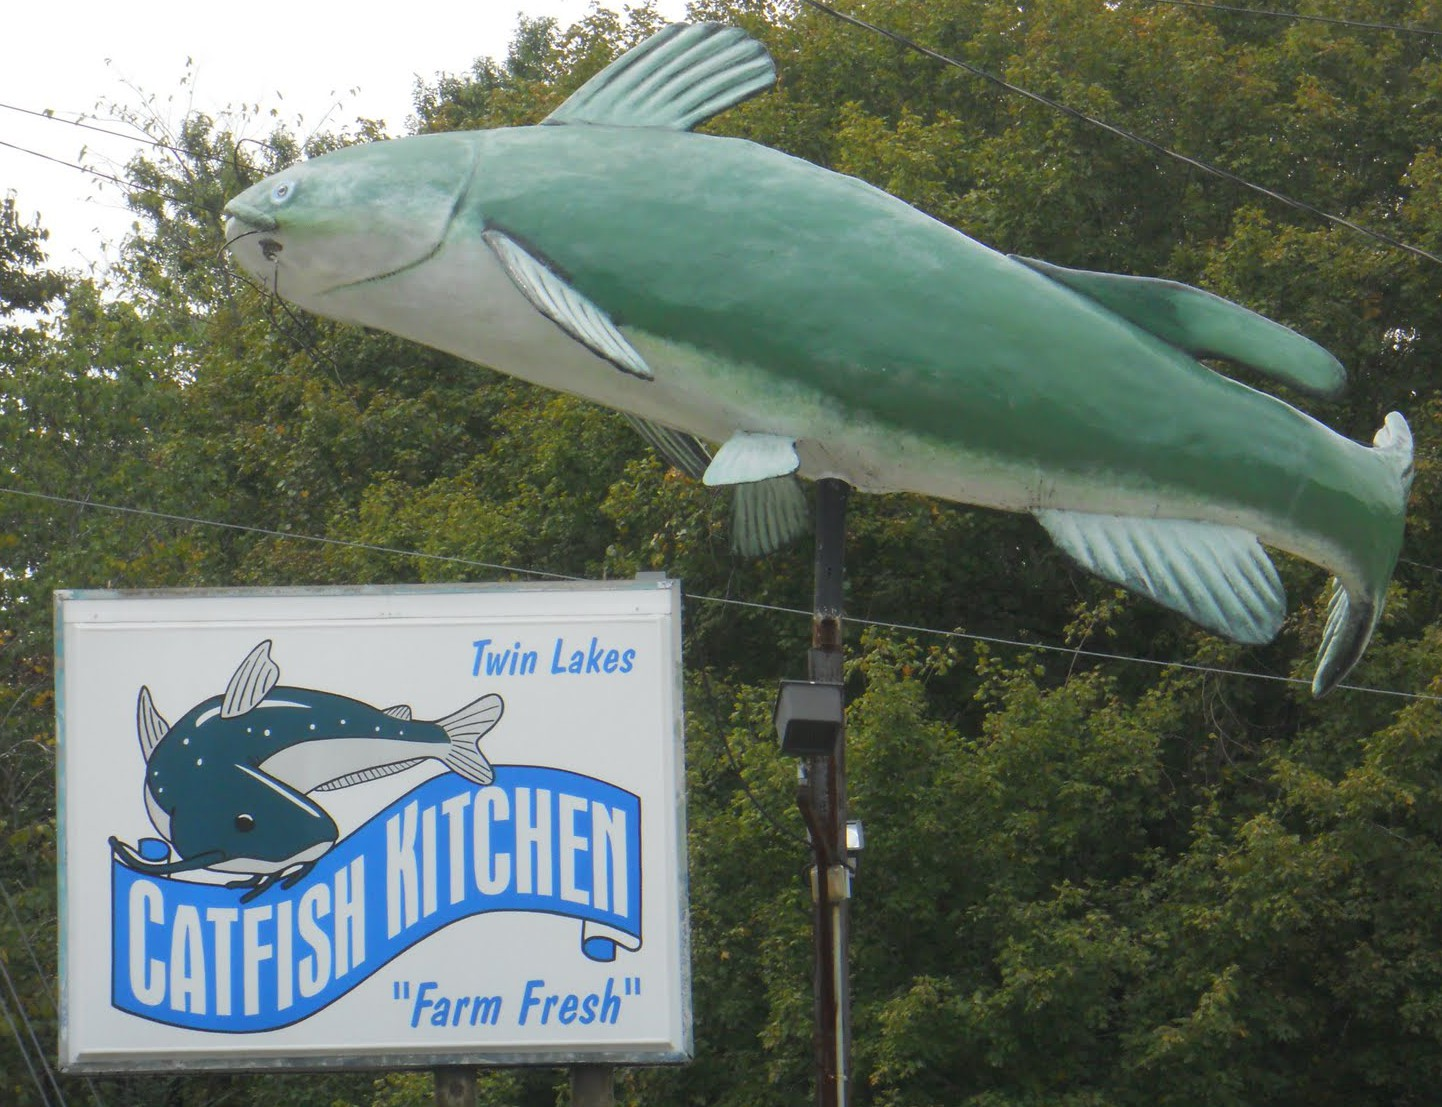 Catfish Kitchen photo